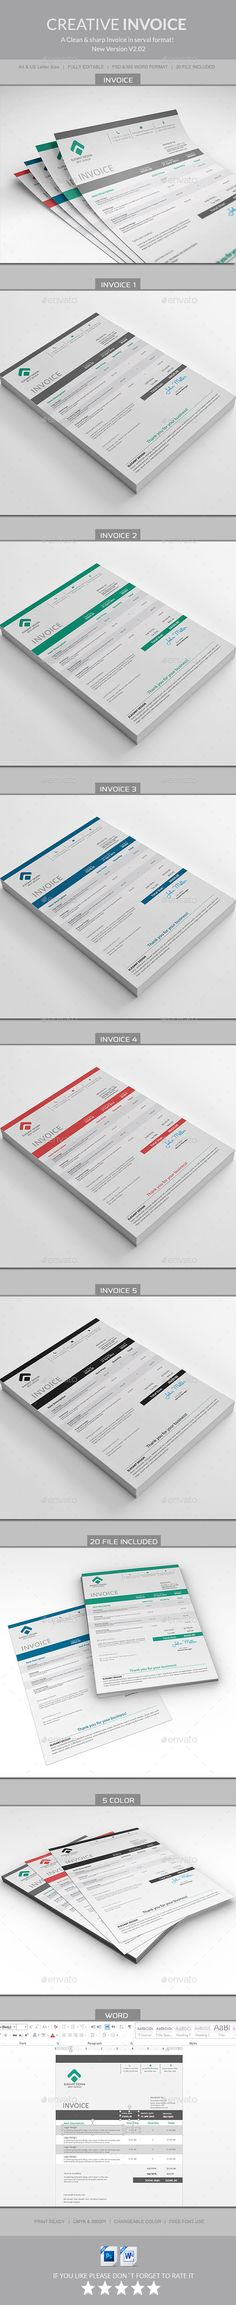 Invoice Template #design Download: http://graphicriver.net/item/invoice/12758272?ref=ksioks